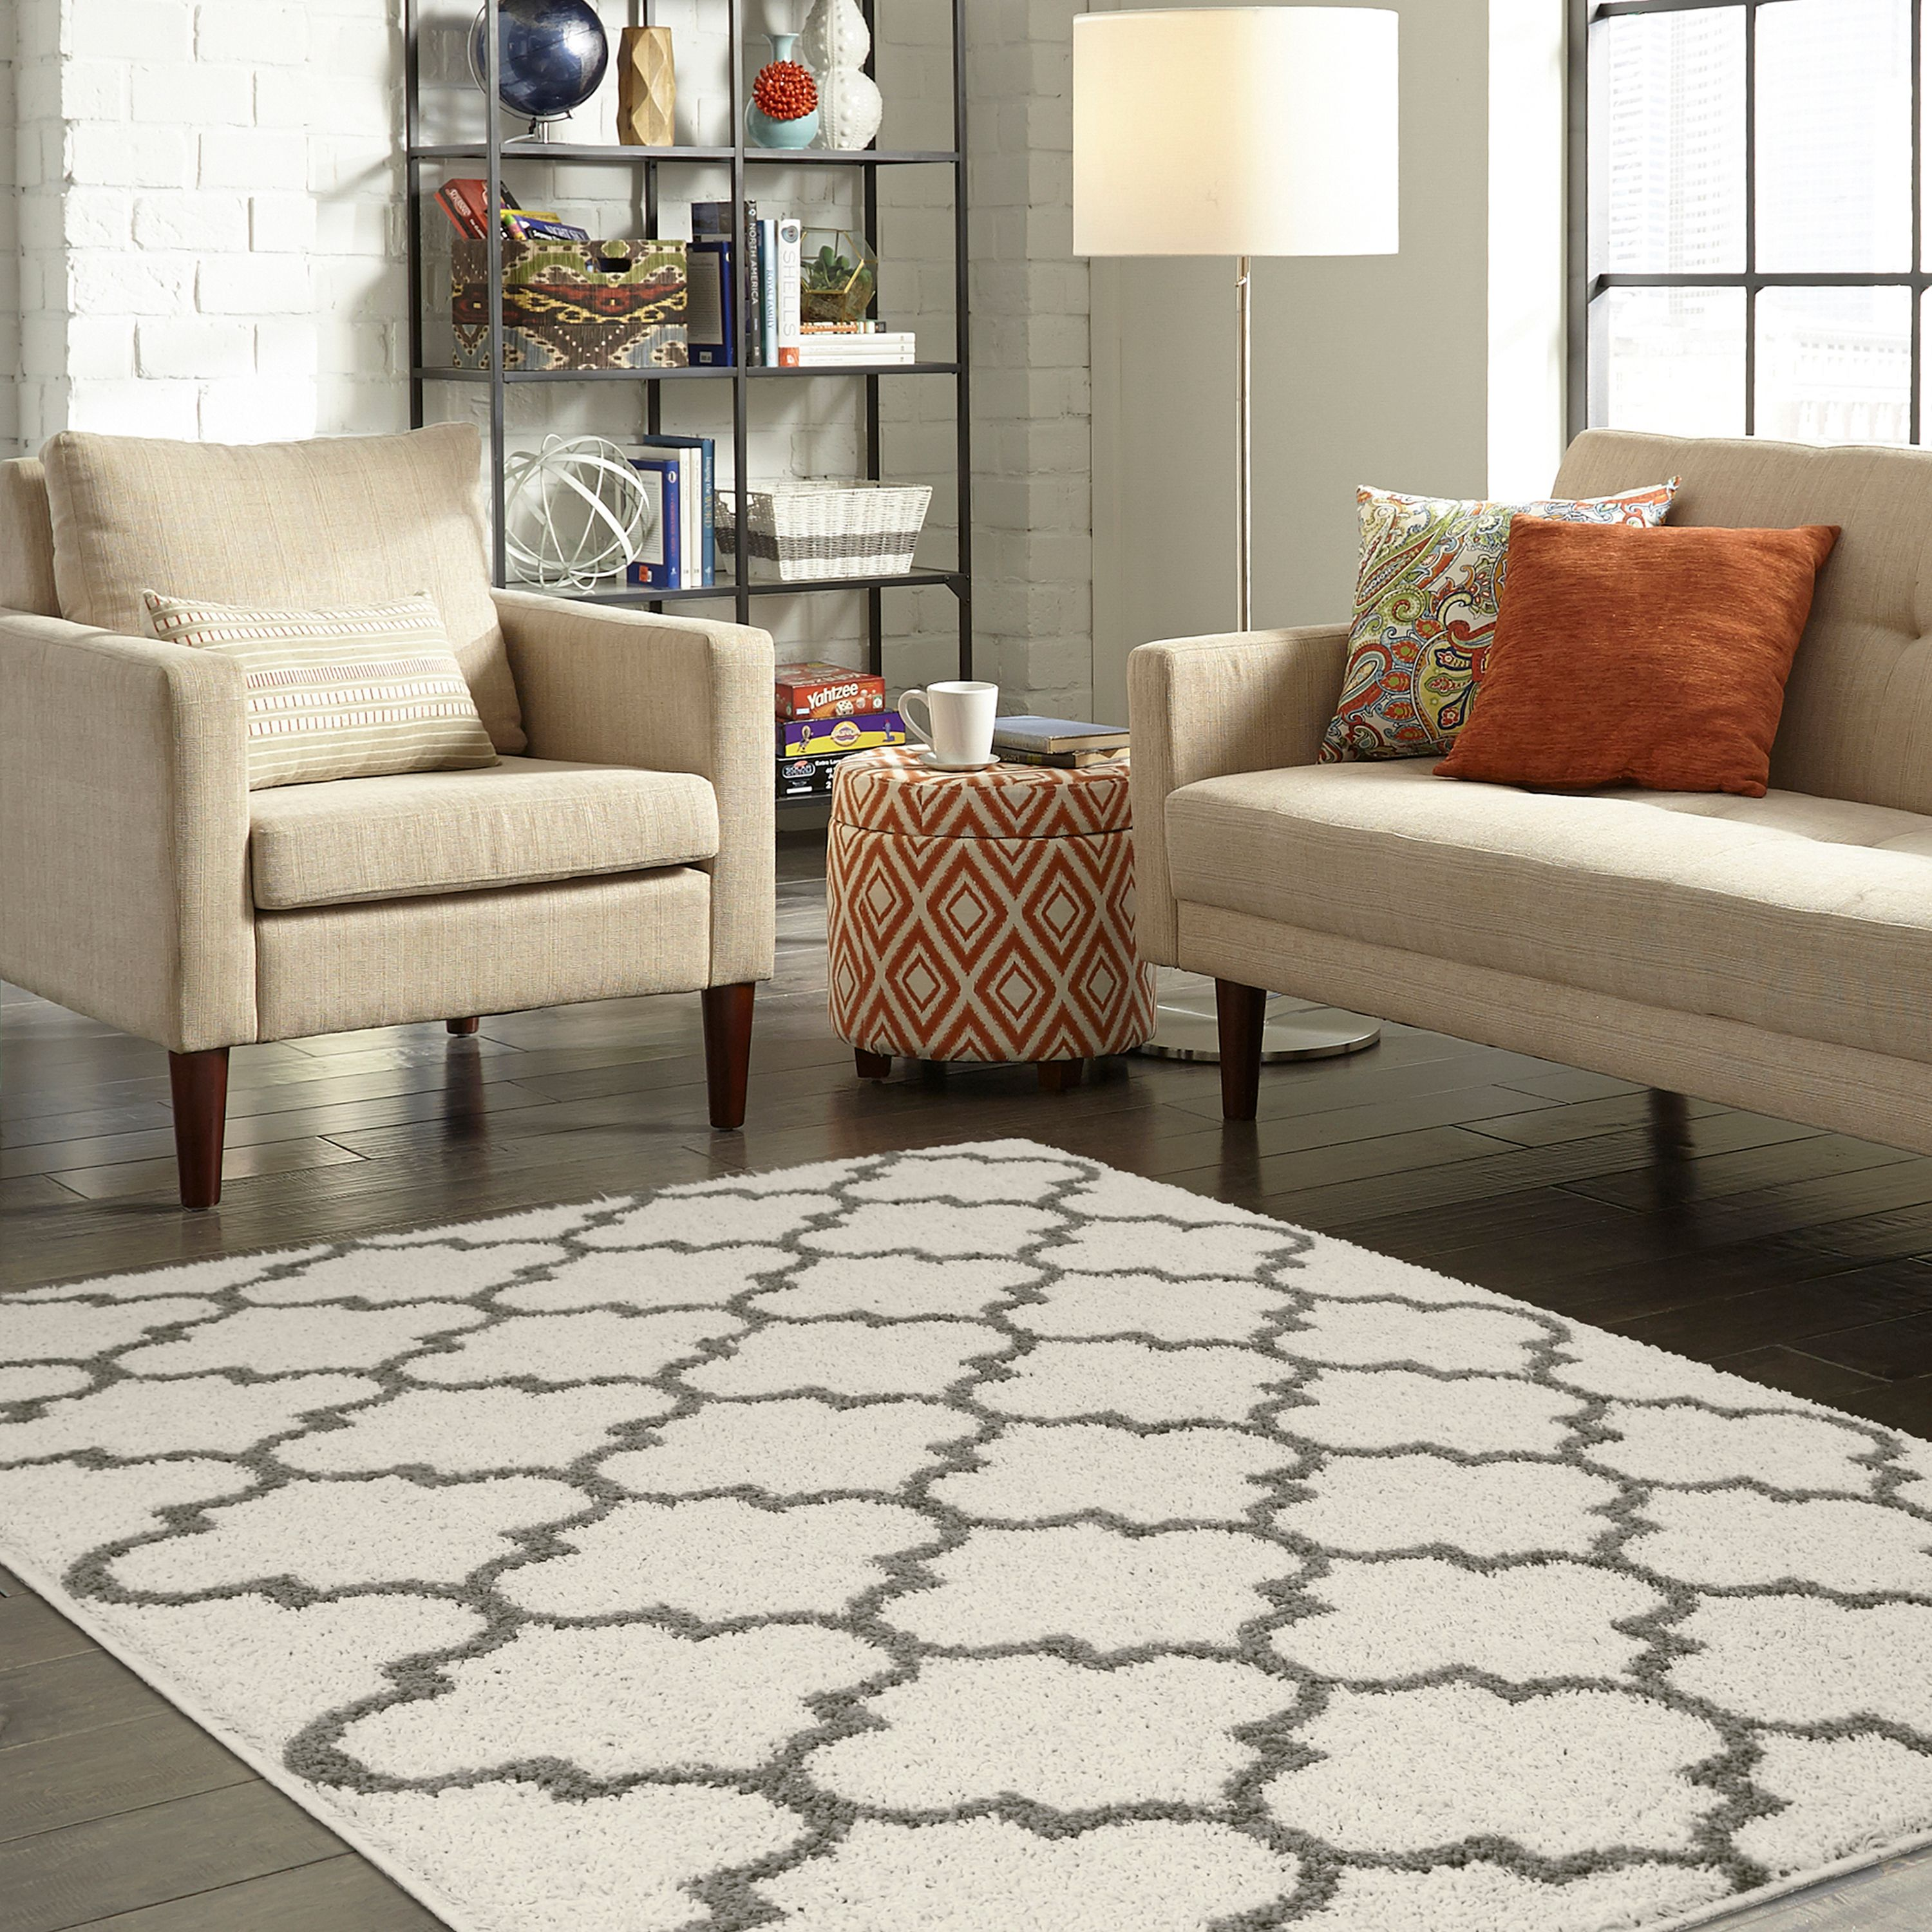 Mainstays Trellis 2 Color Shag Area Rug, Multiple Colors And Sizes